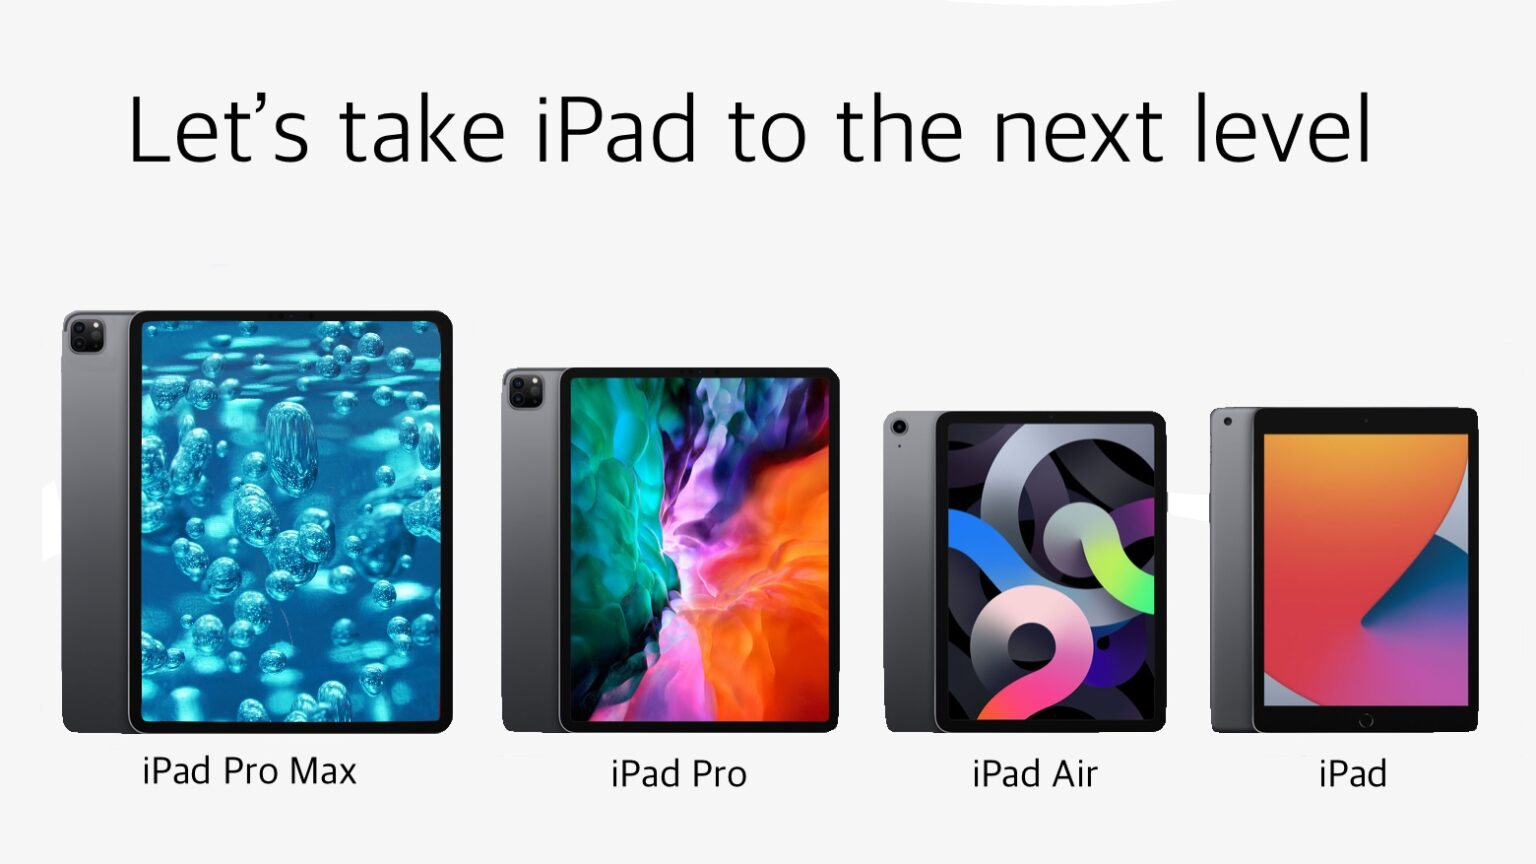 iPad Pro Max: It's time to take iPad to the next level